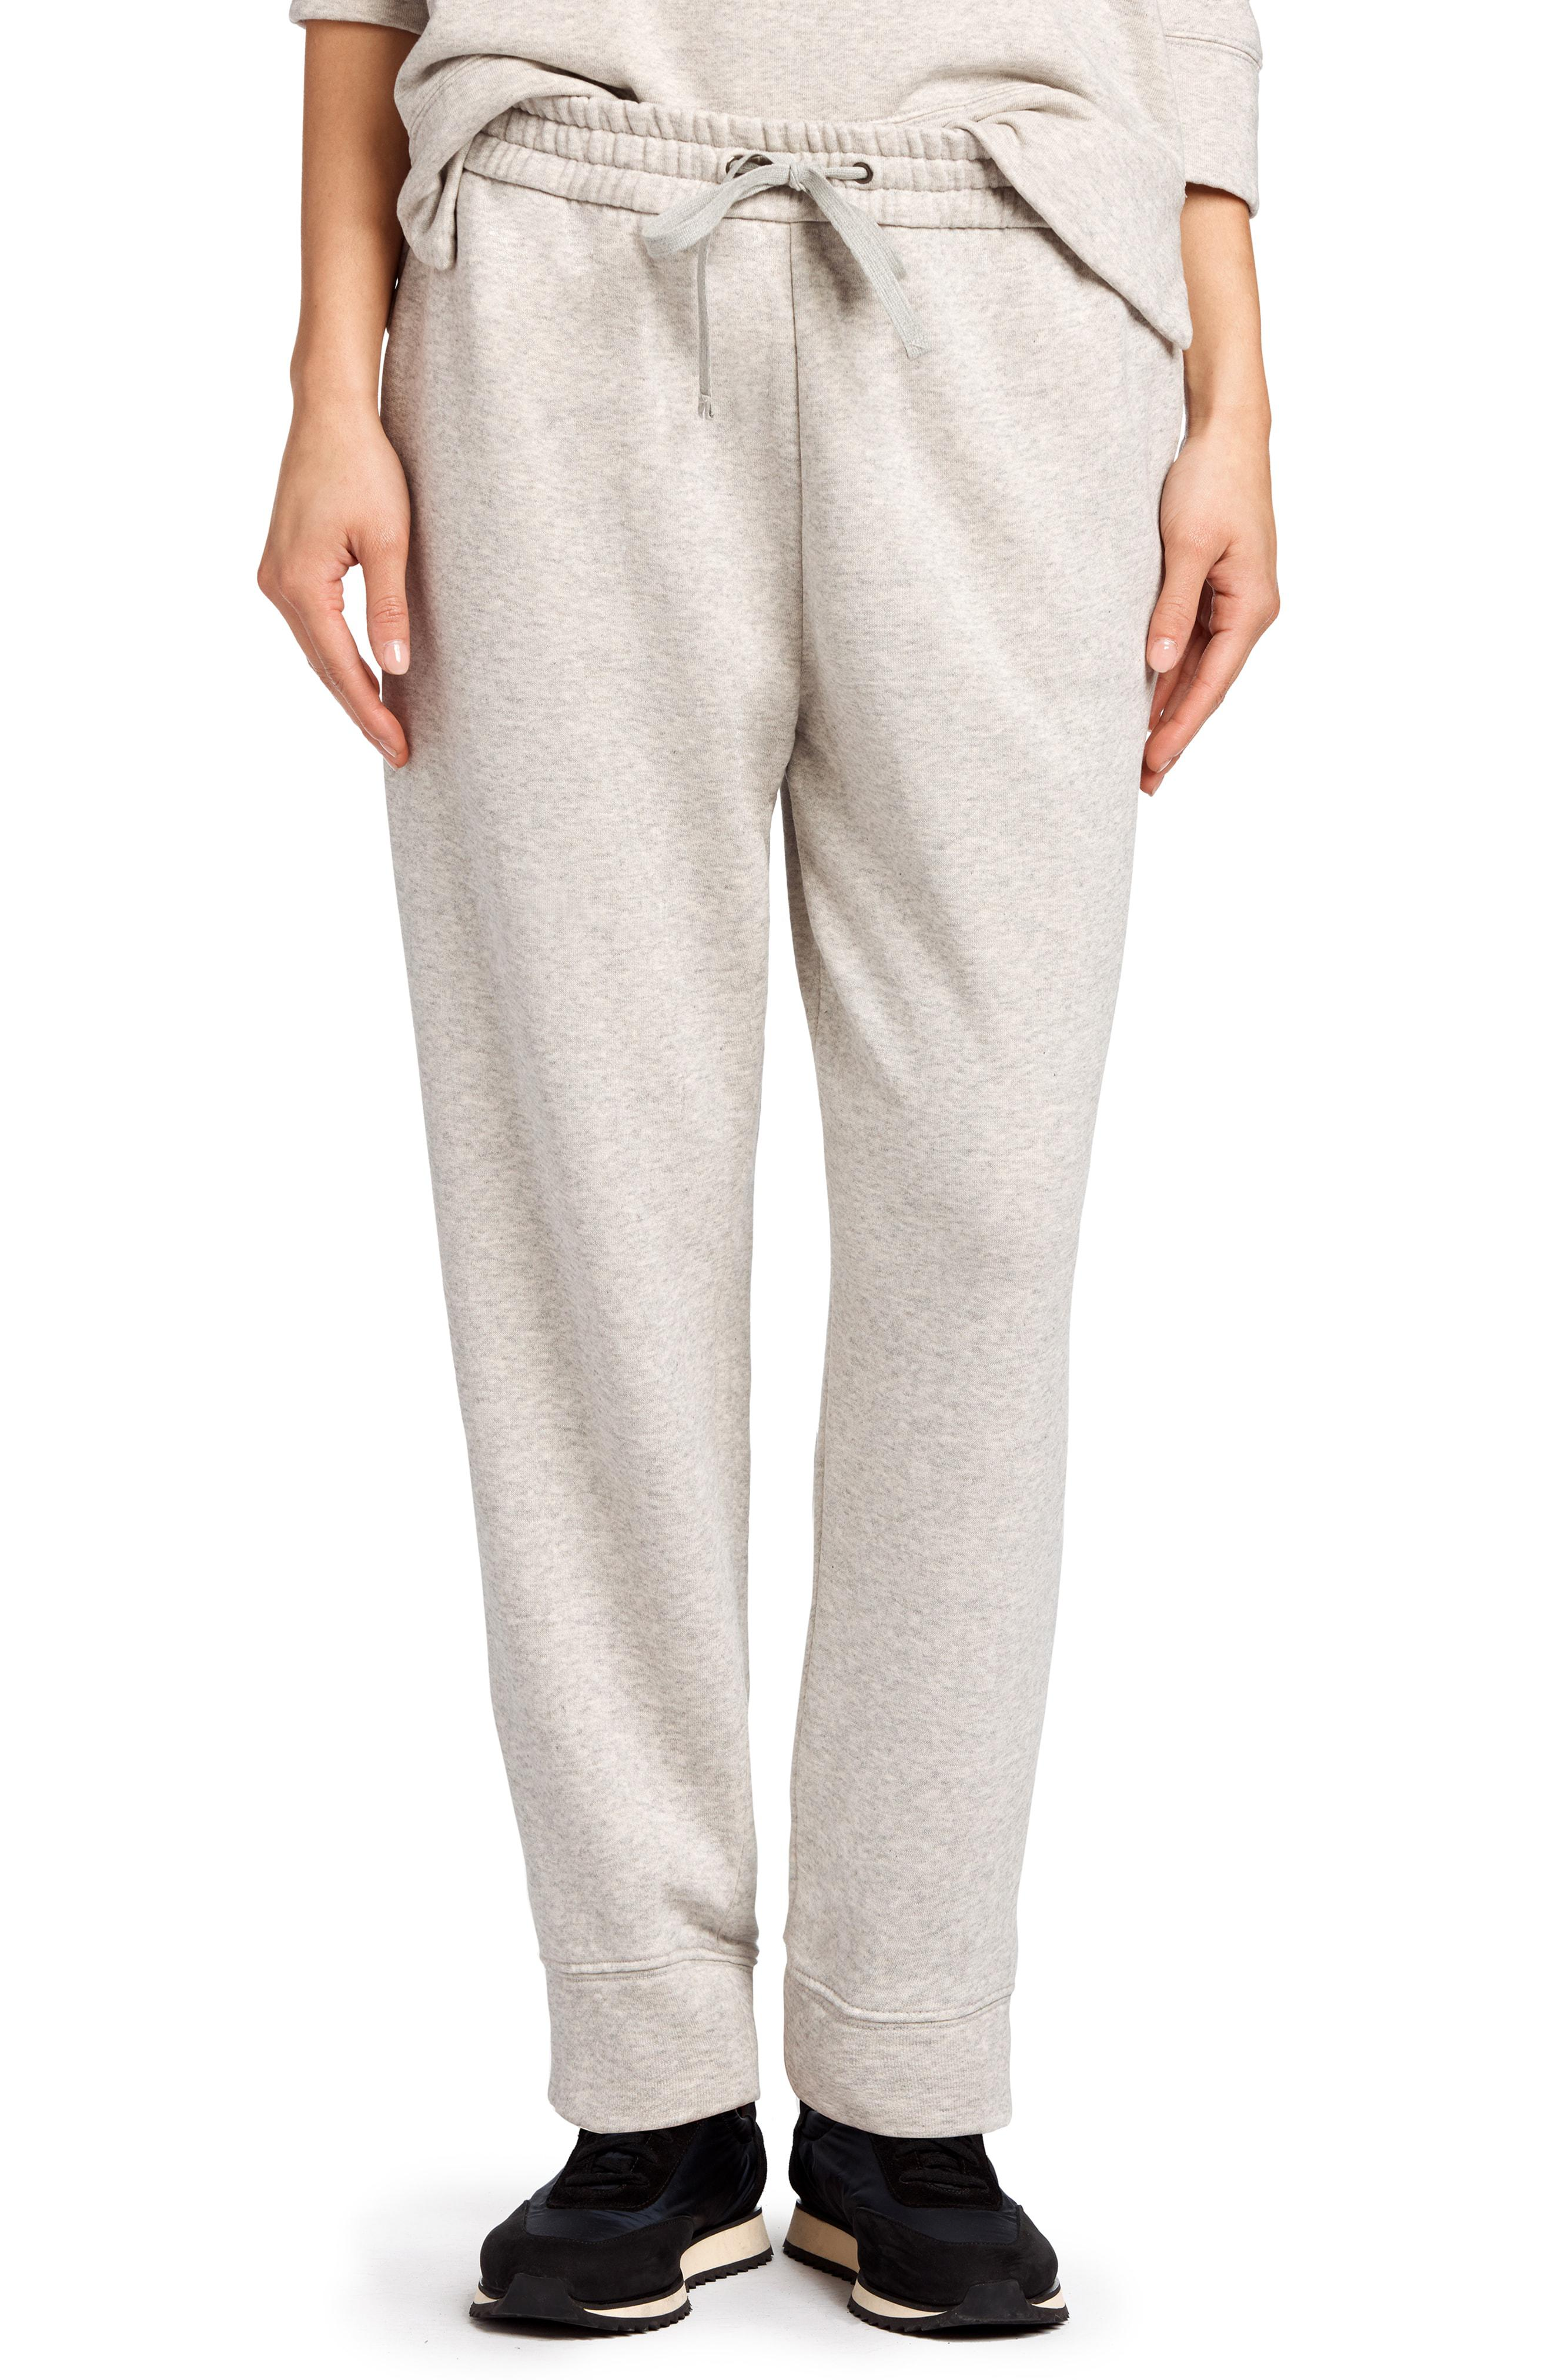 5bc44f158e9 Lyst - James Perse Luxe Sweatpants in Gray